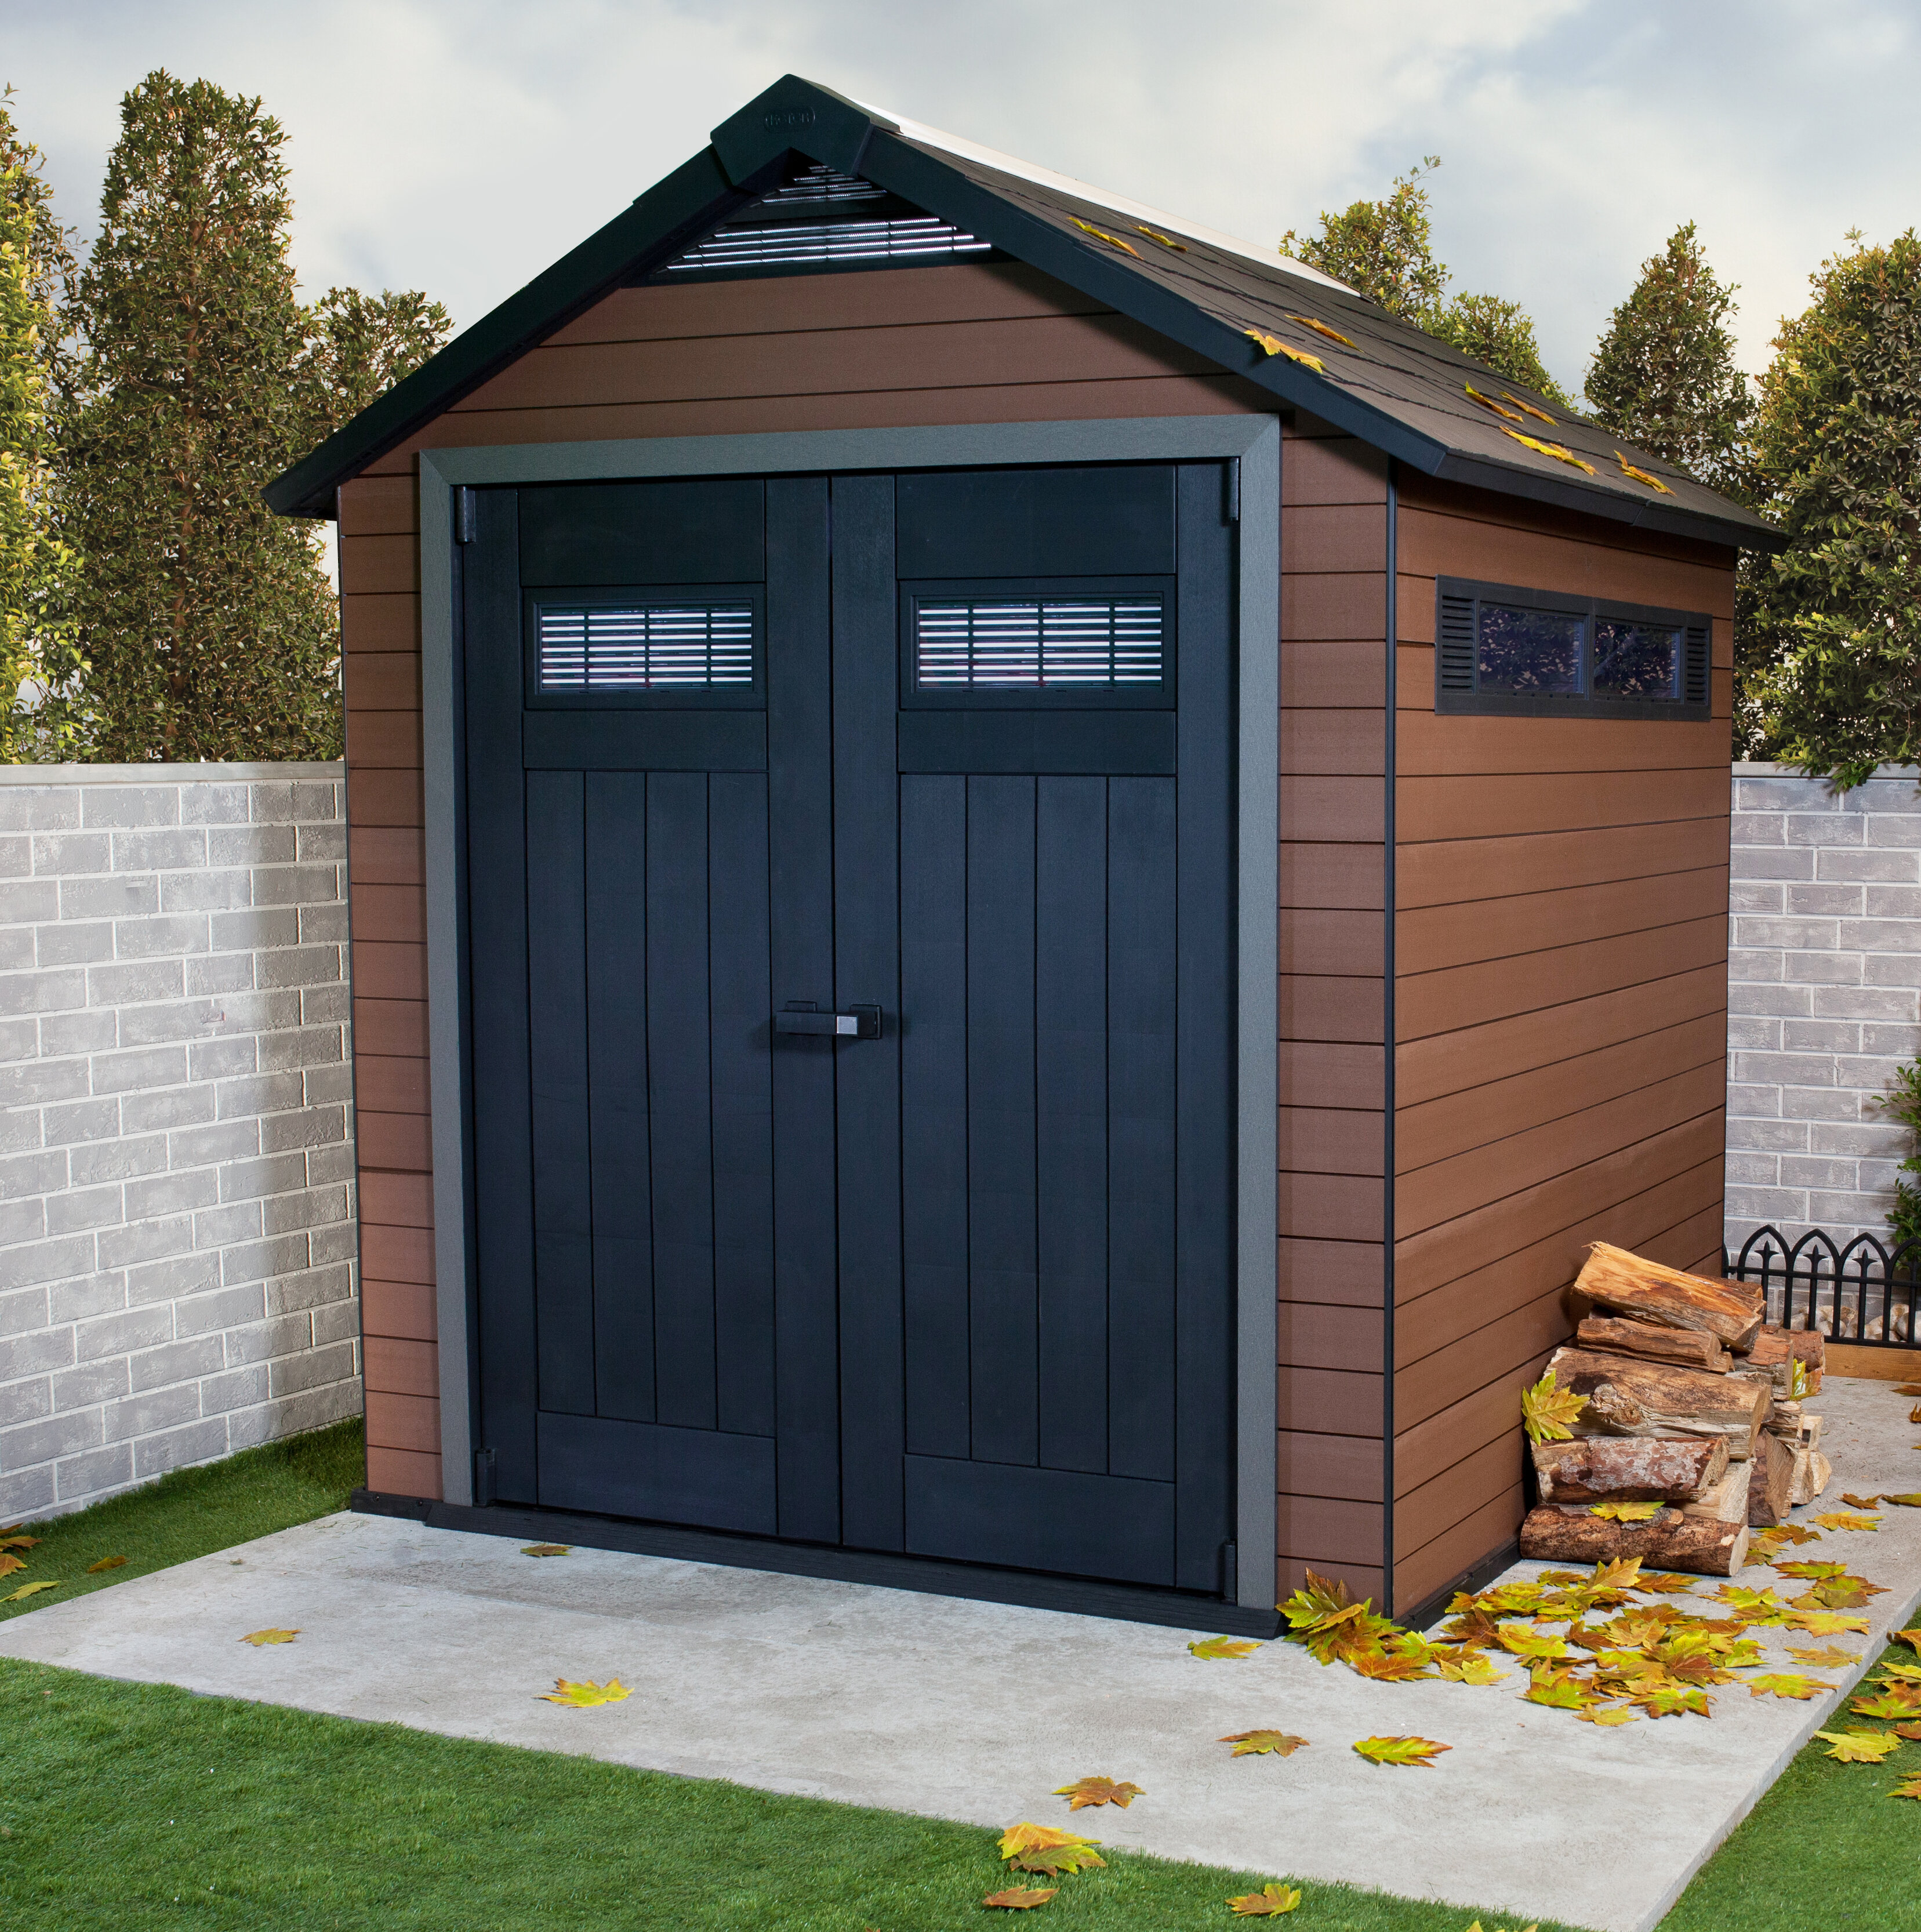 Keter Fusion 7 ft. 4 in. W x 7 ft. 5 in. D Wood-Plastic Composite Storage Shed u0026 Reviews   Wayfair & Keter Fusion 7 ft. 4 in. W x 7 ft. 5 in. D Wood-Plastic Composite ...